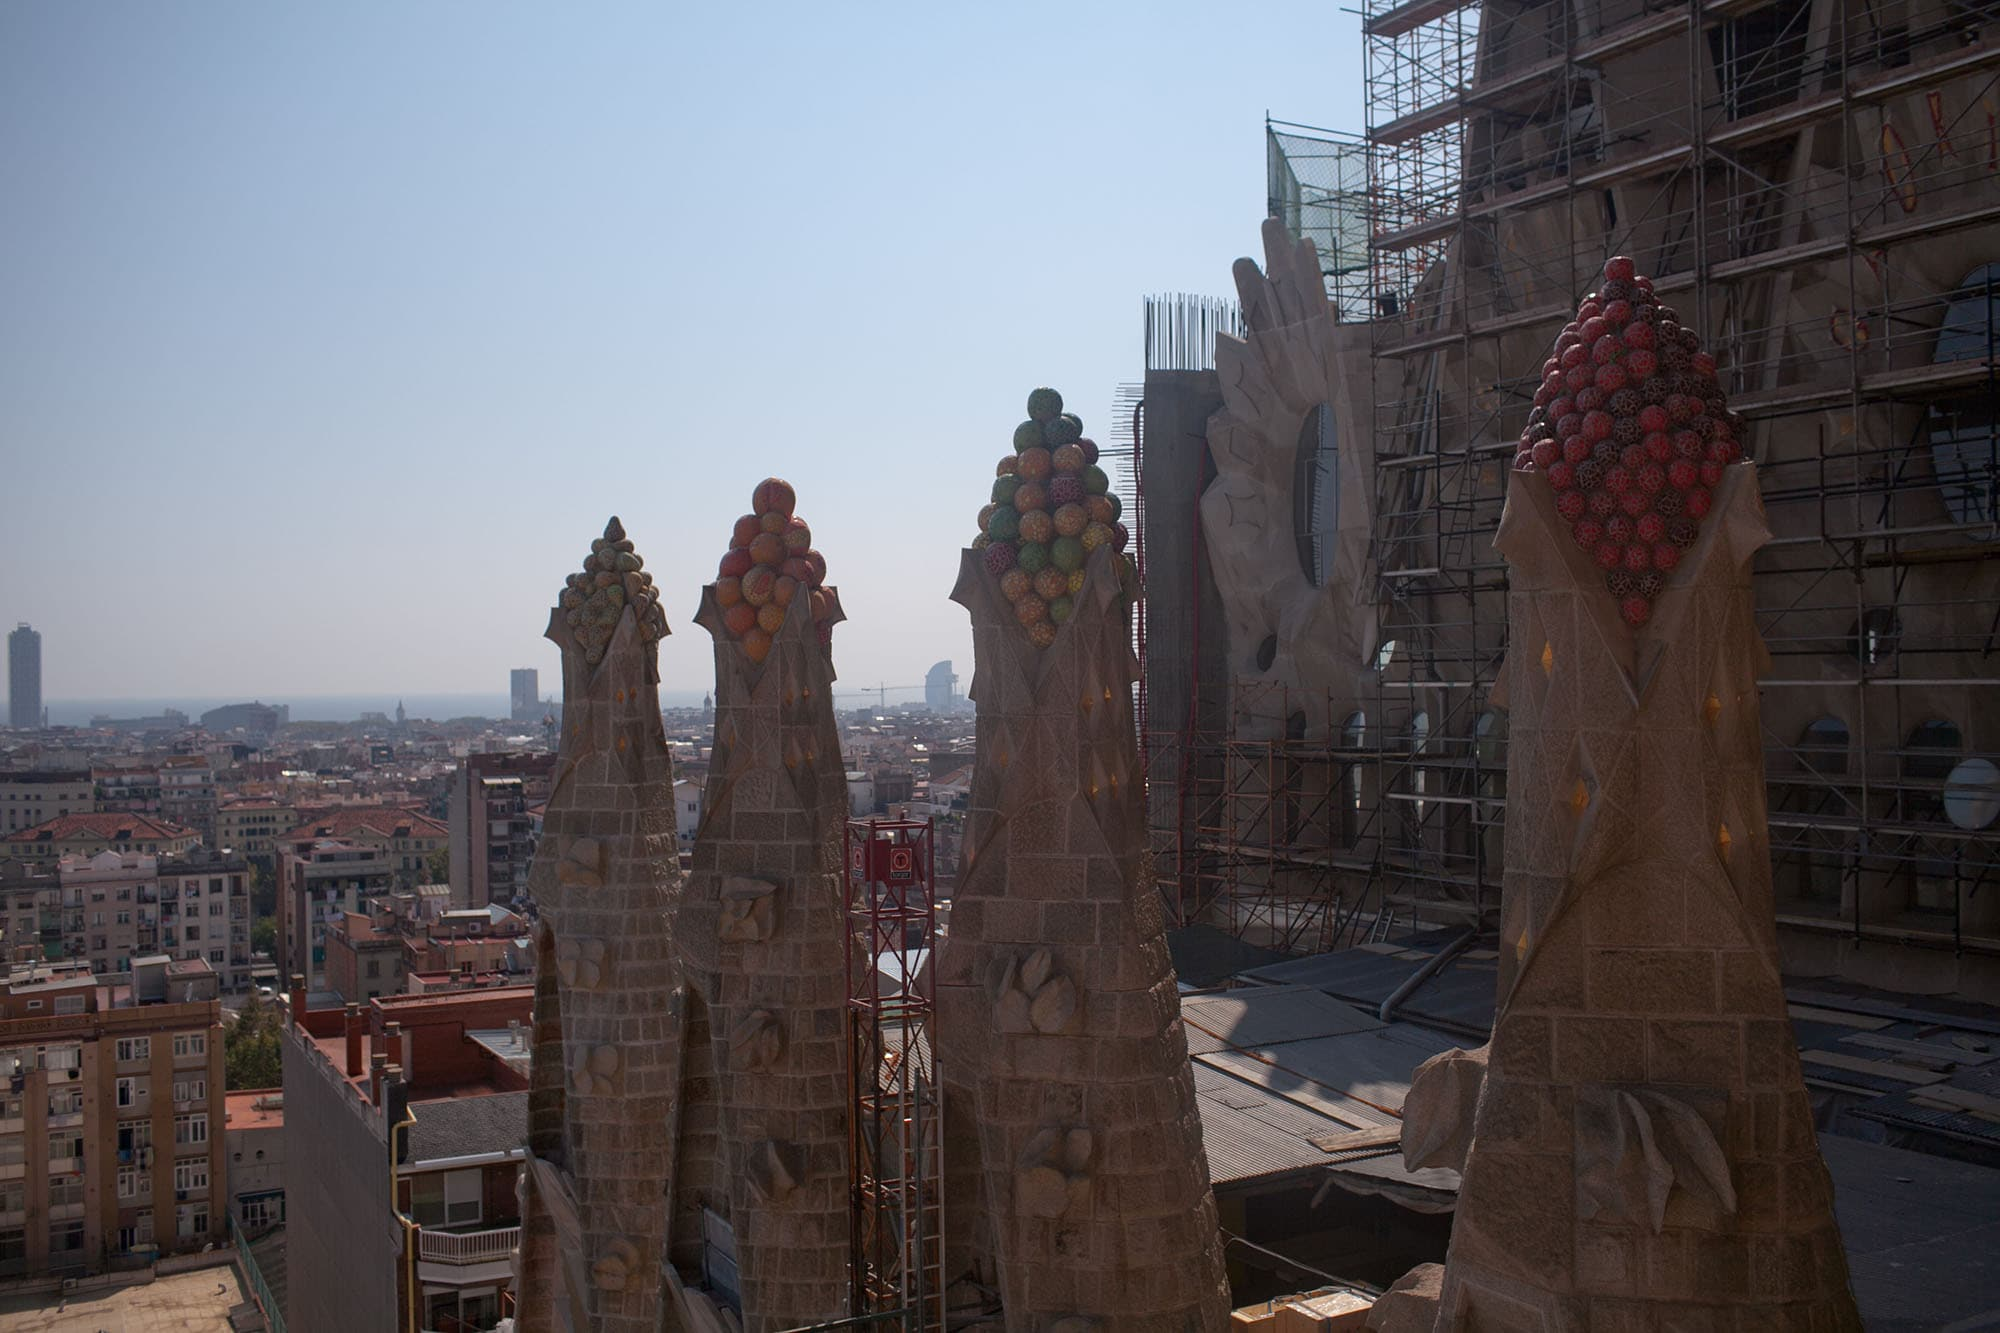 La Sagrada Família, Gaudi's unfinished cathedral in Barcelona, Spain